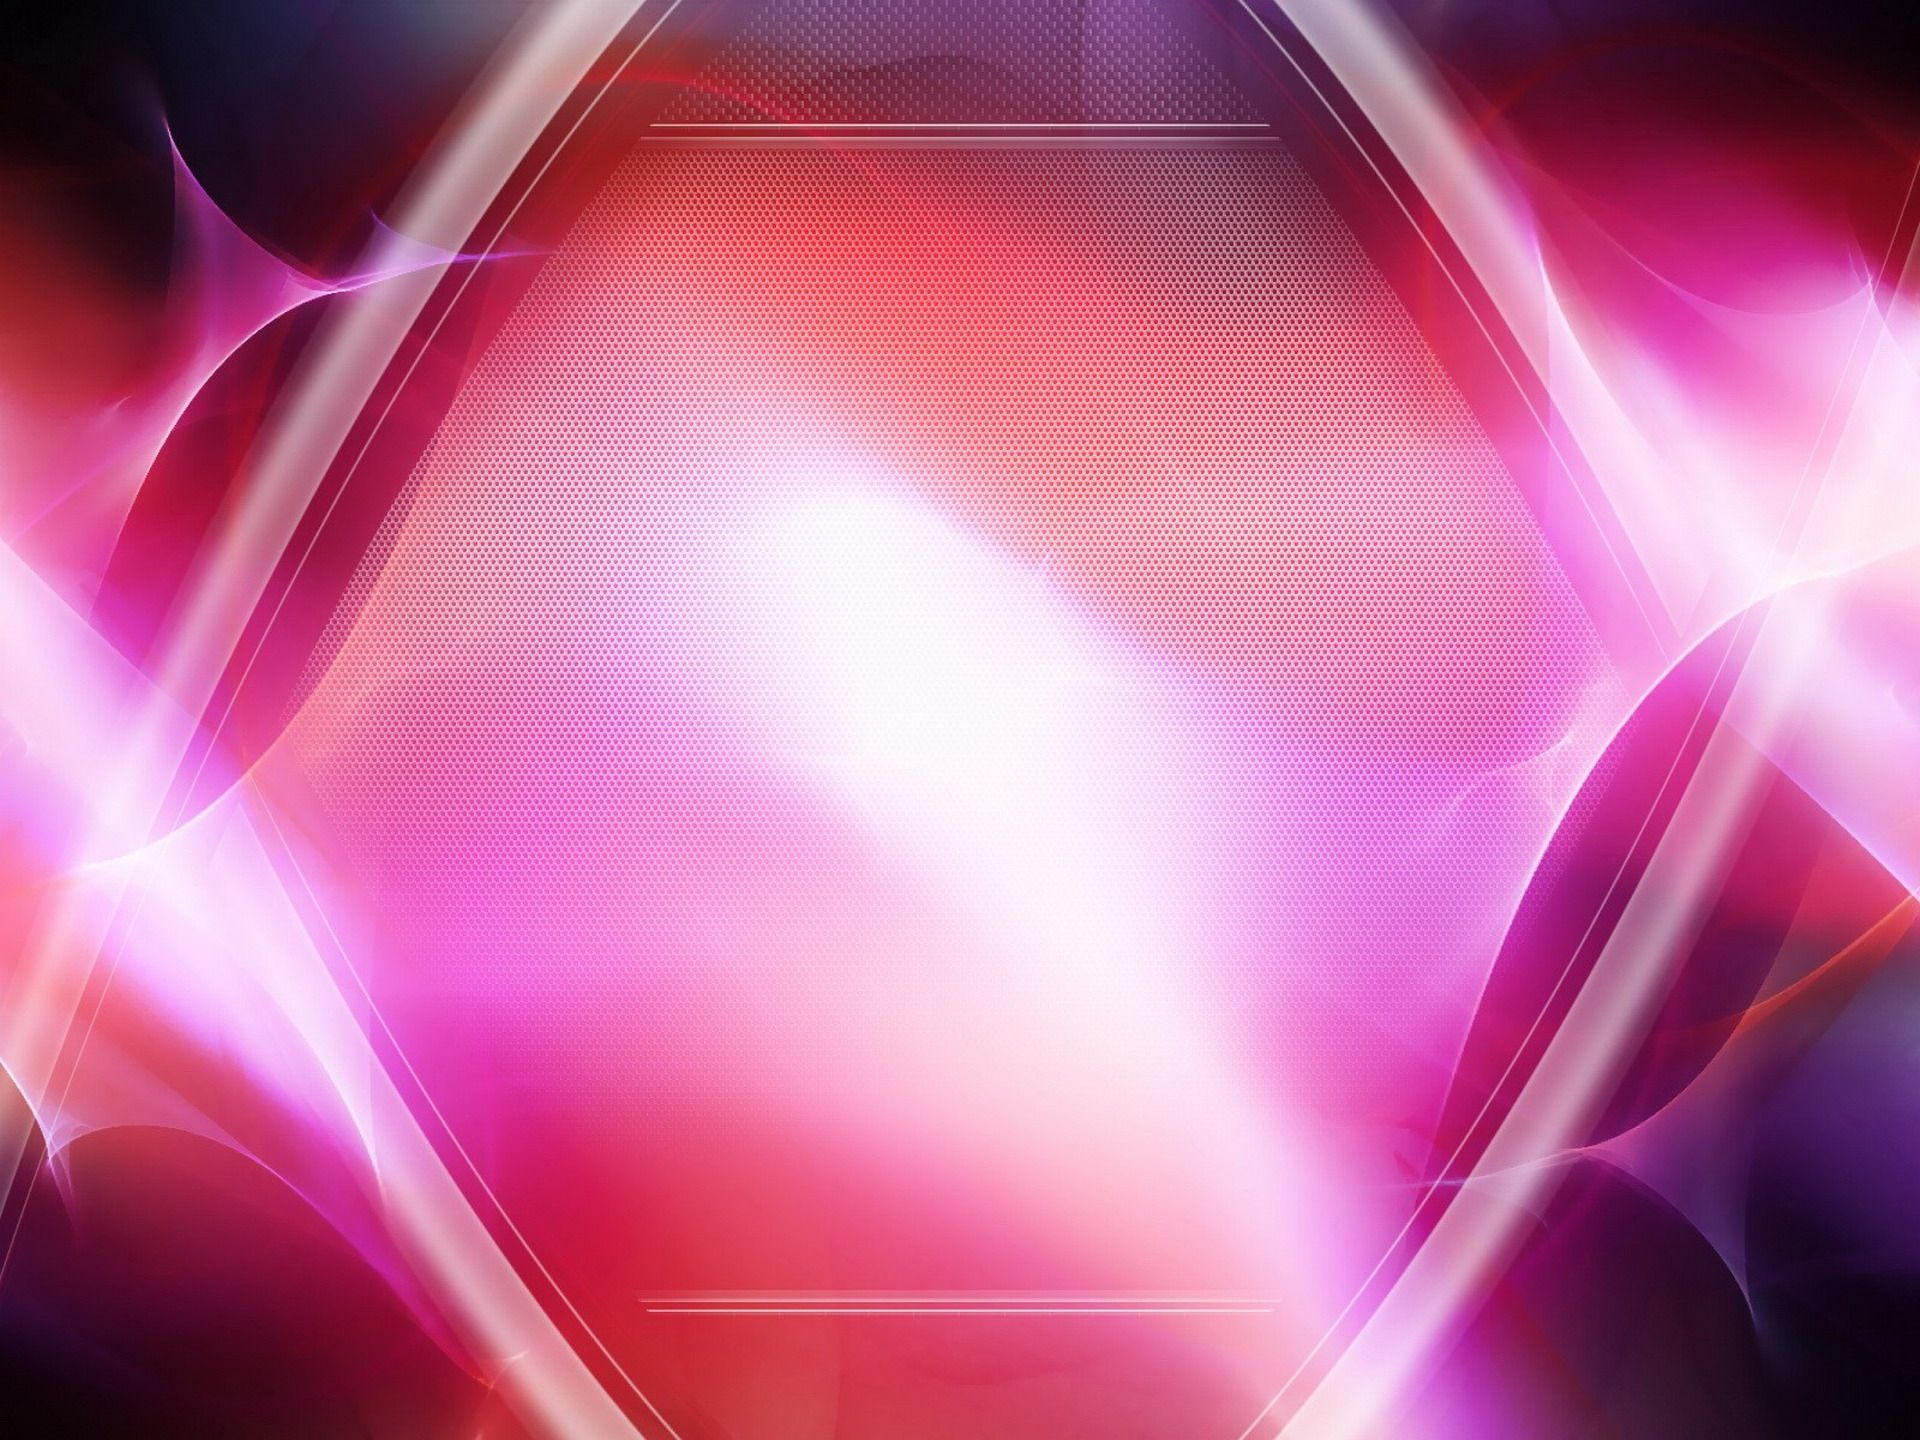 pink cell phone wallpaper